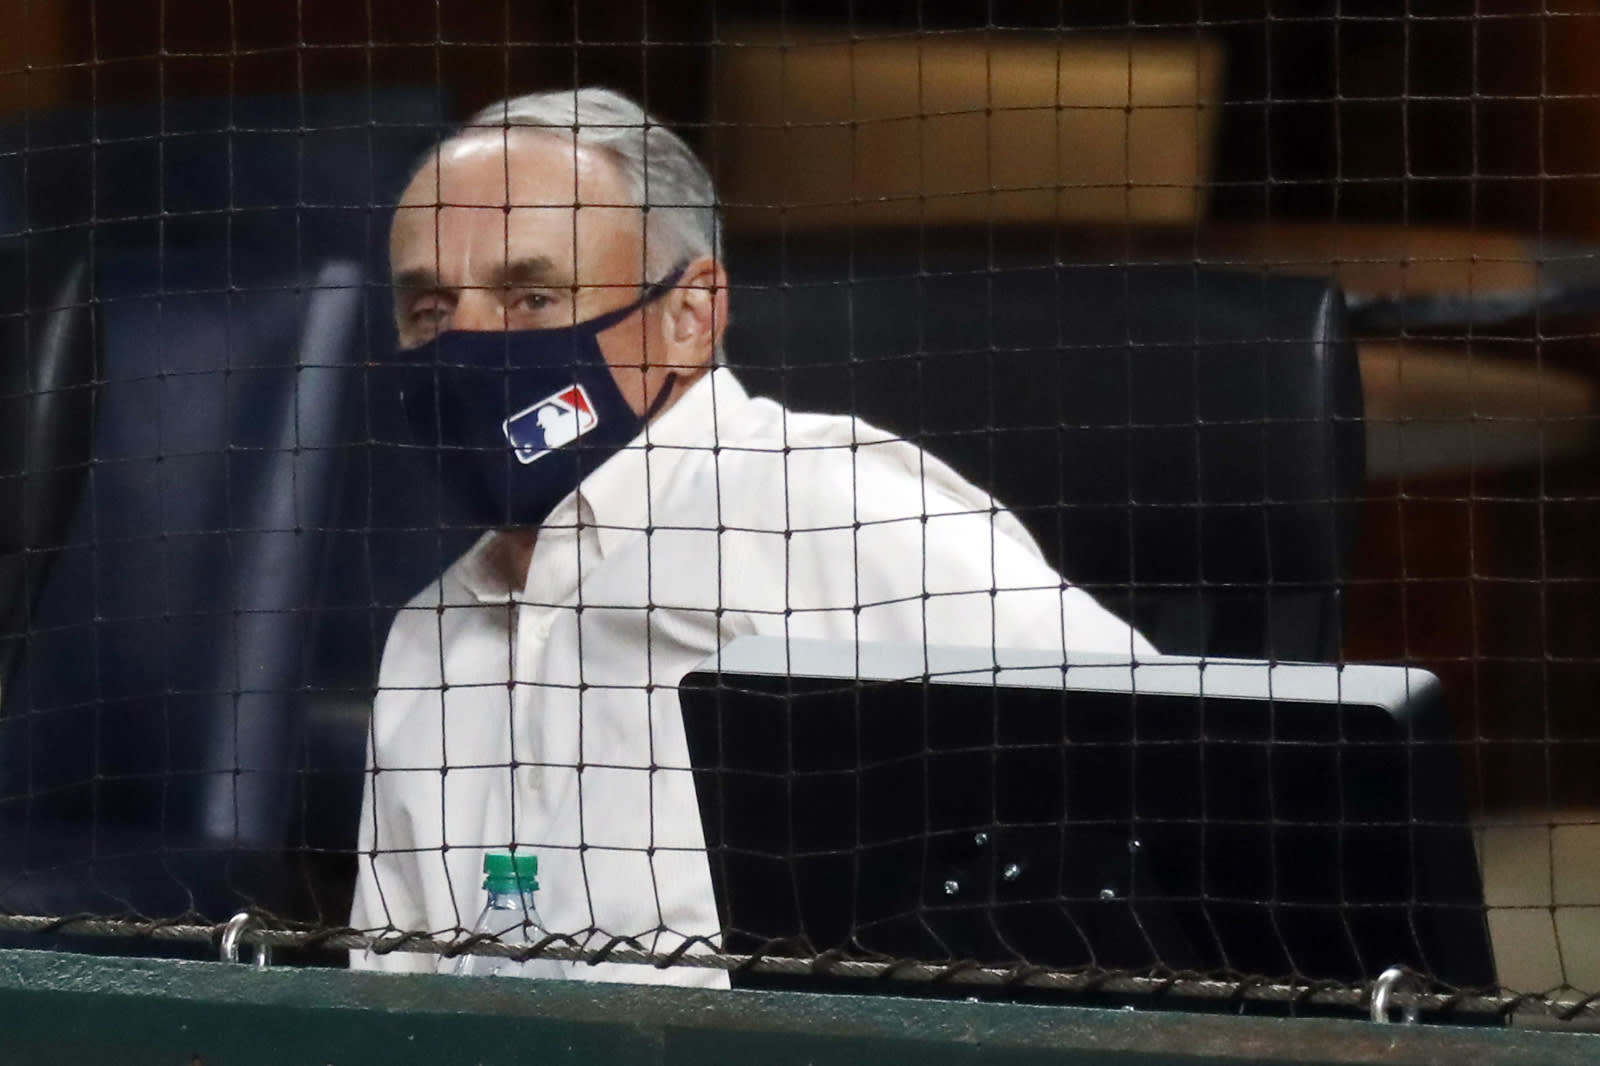 Commissioner of Baseball Rob Manfred looks on. Seattle Mariners